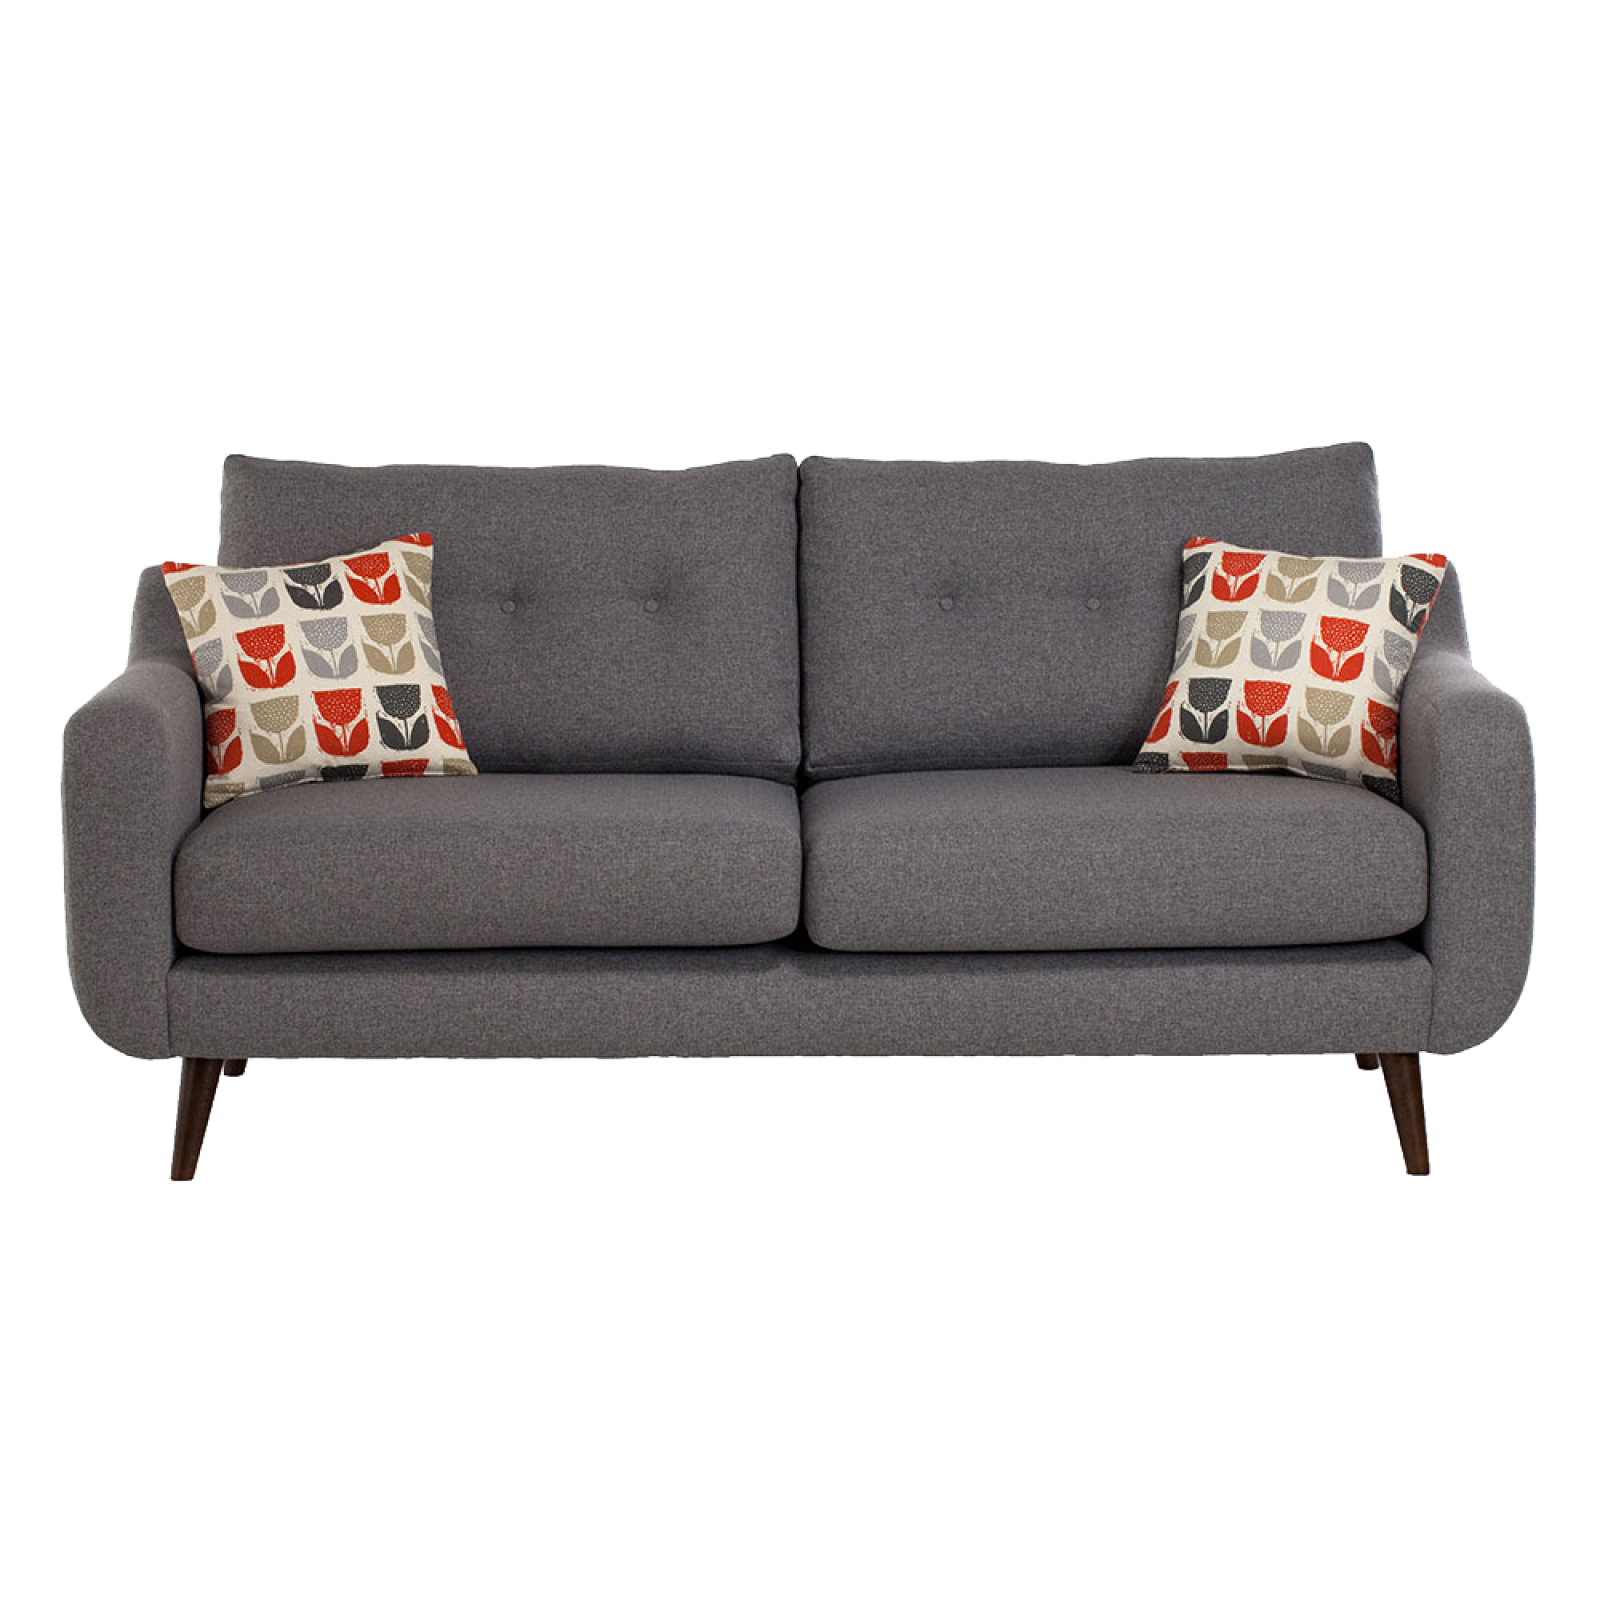 Lisbon Large Sofa By Whitemeadow - Fabric Grade C